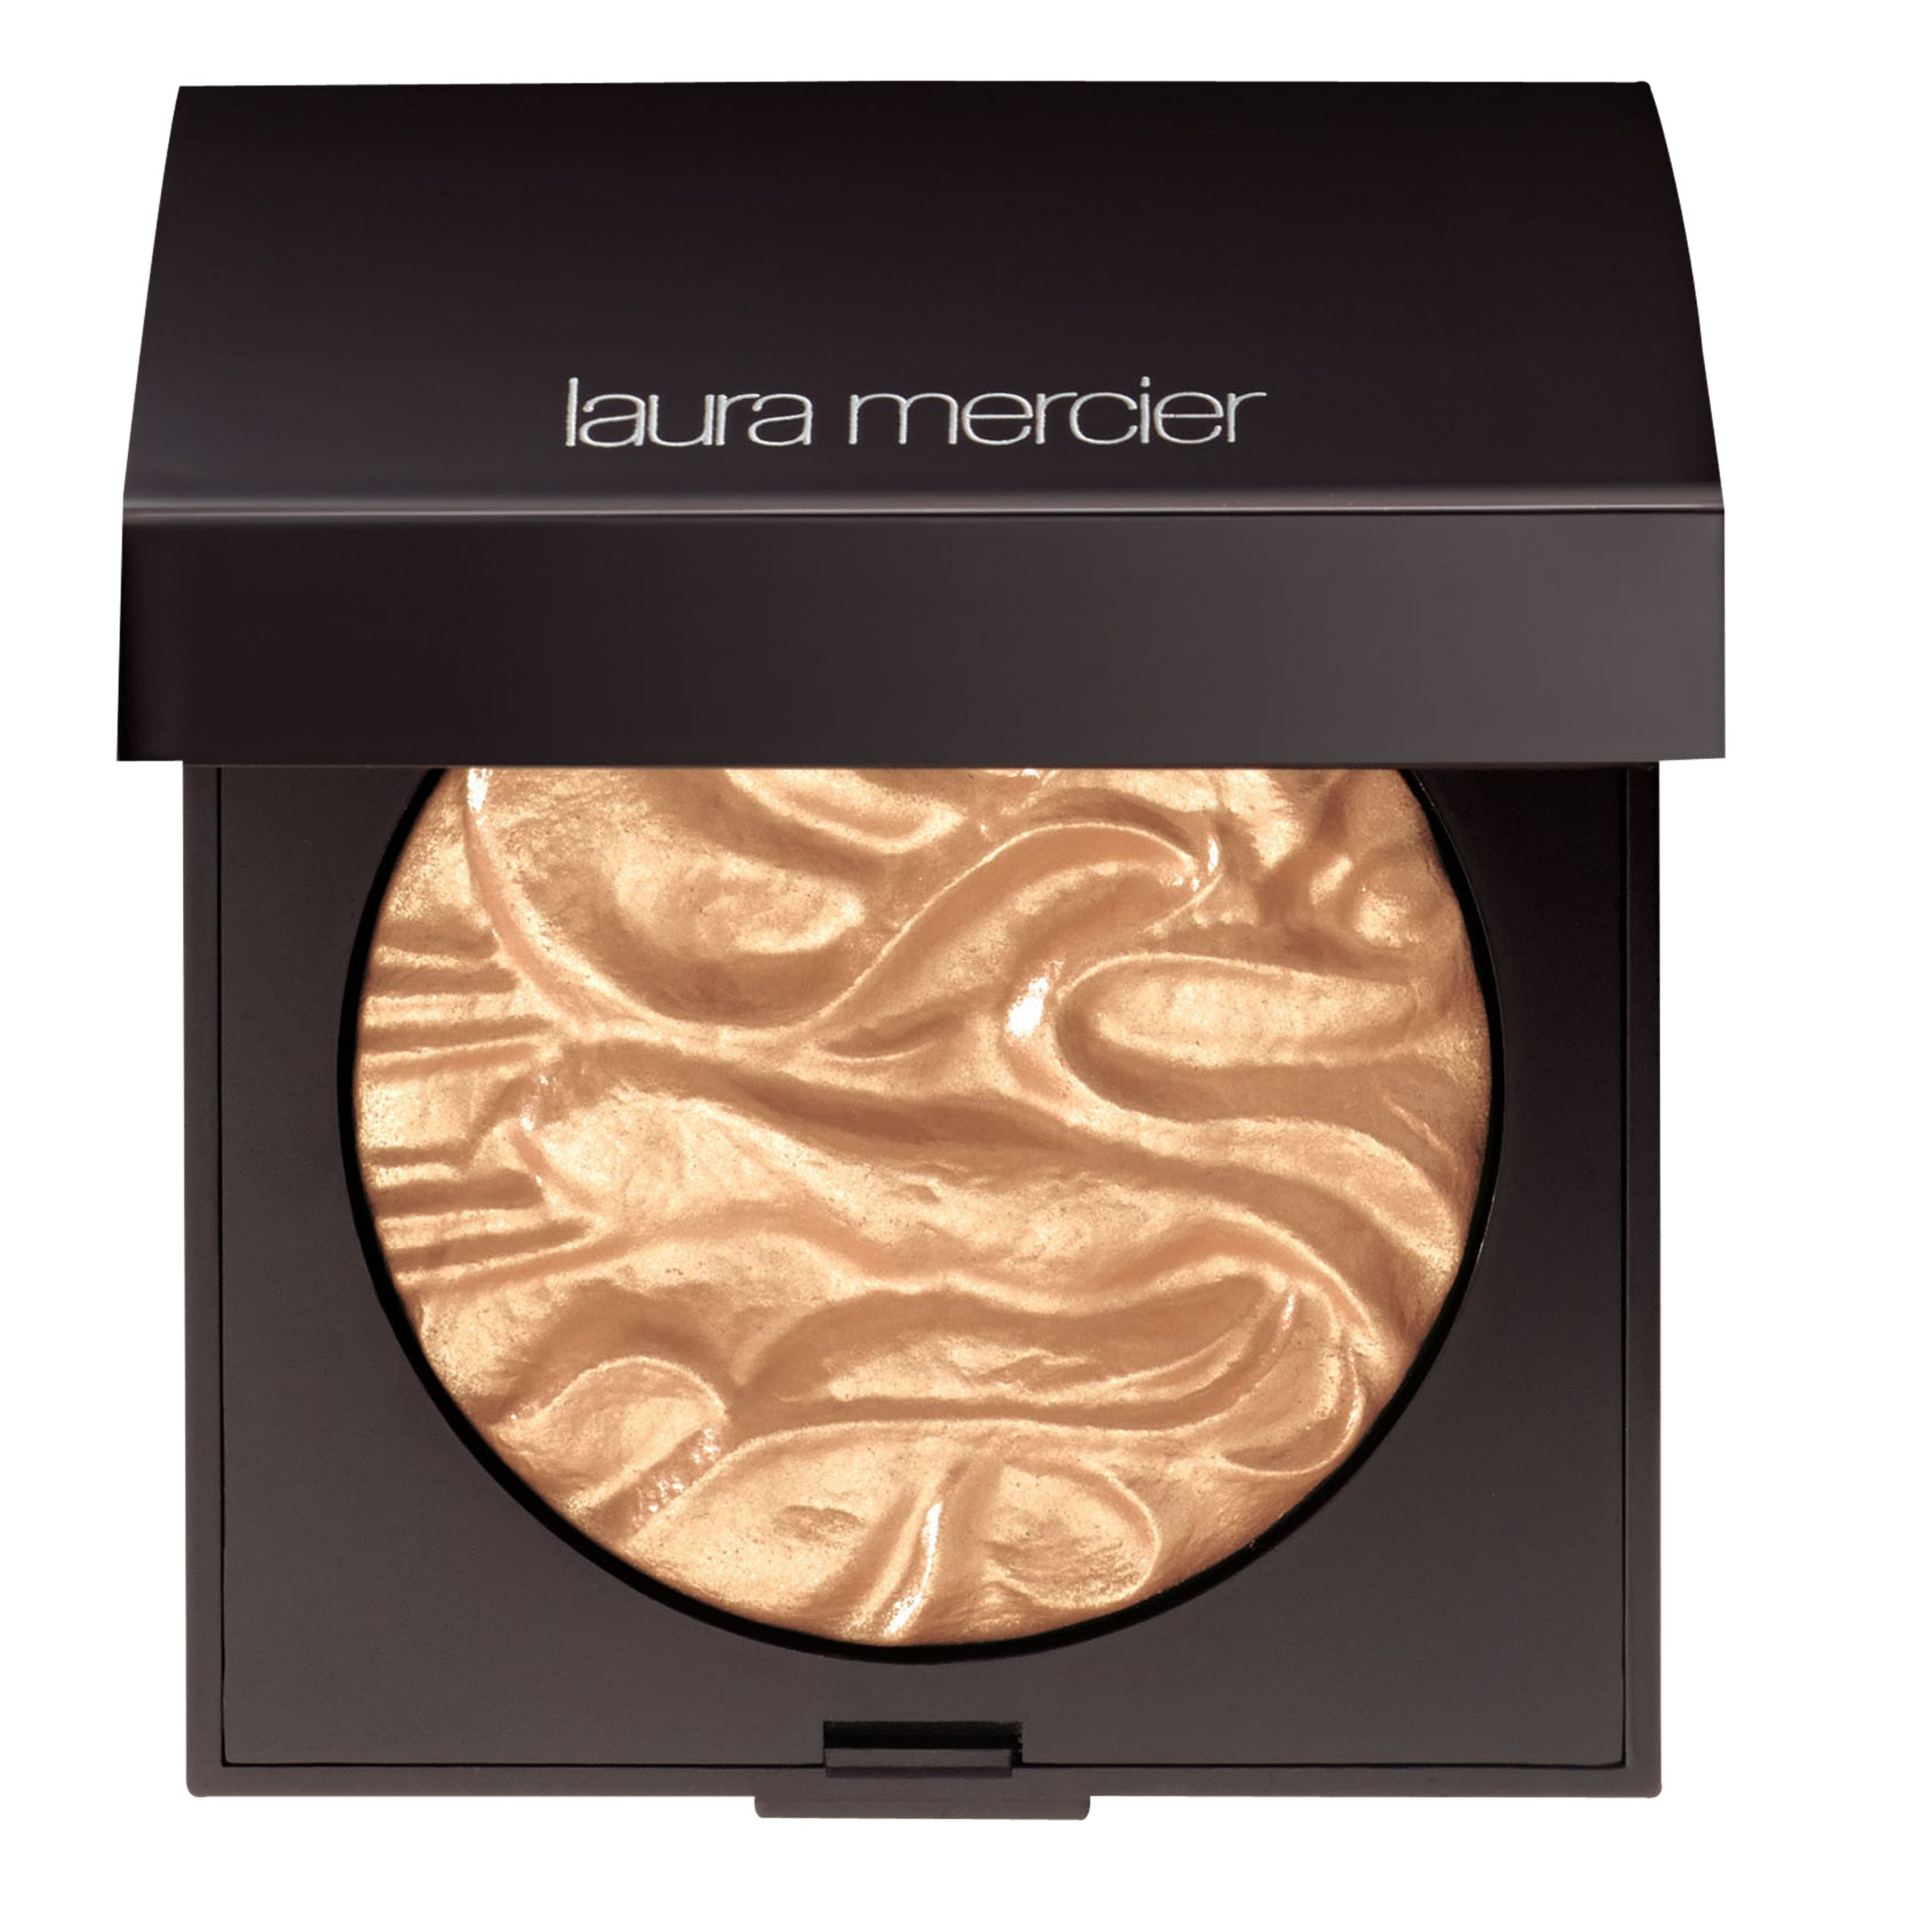 Laura Mercier Laura Mercier Face Illuminator